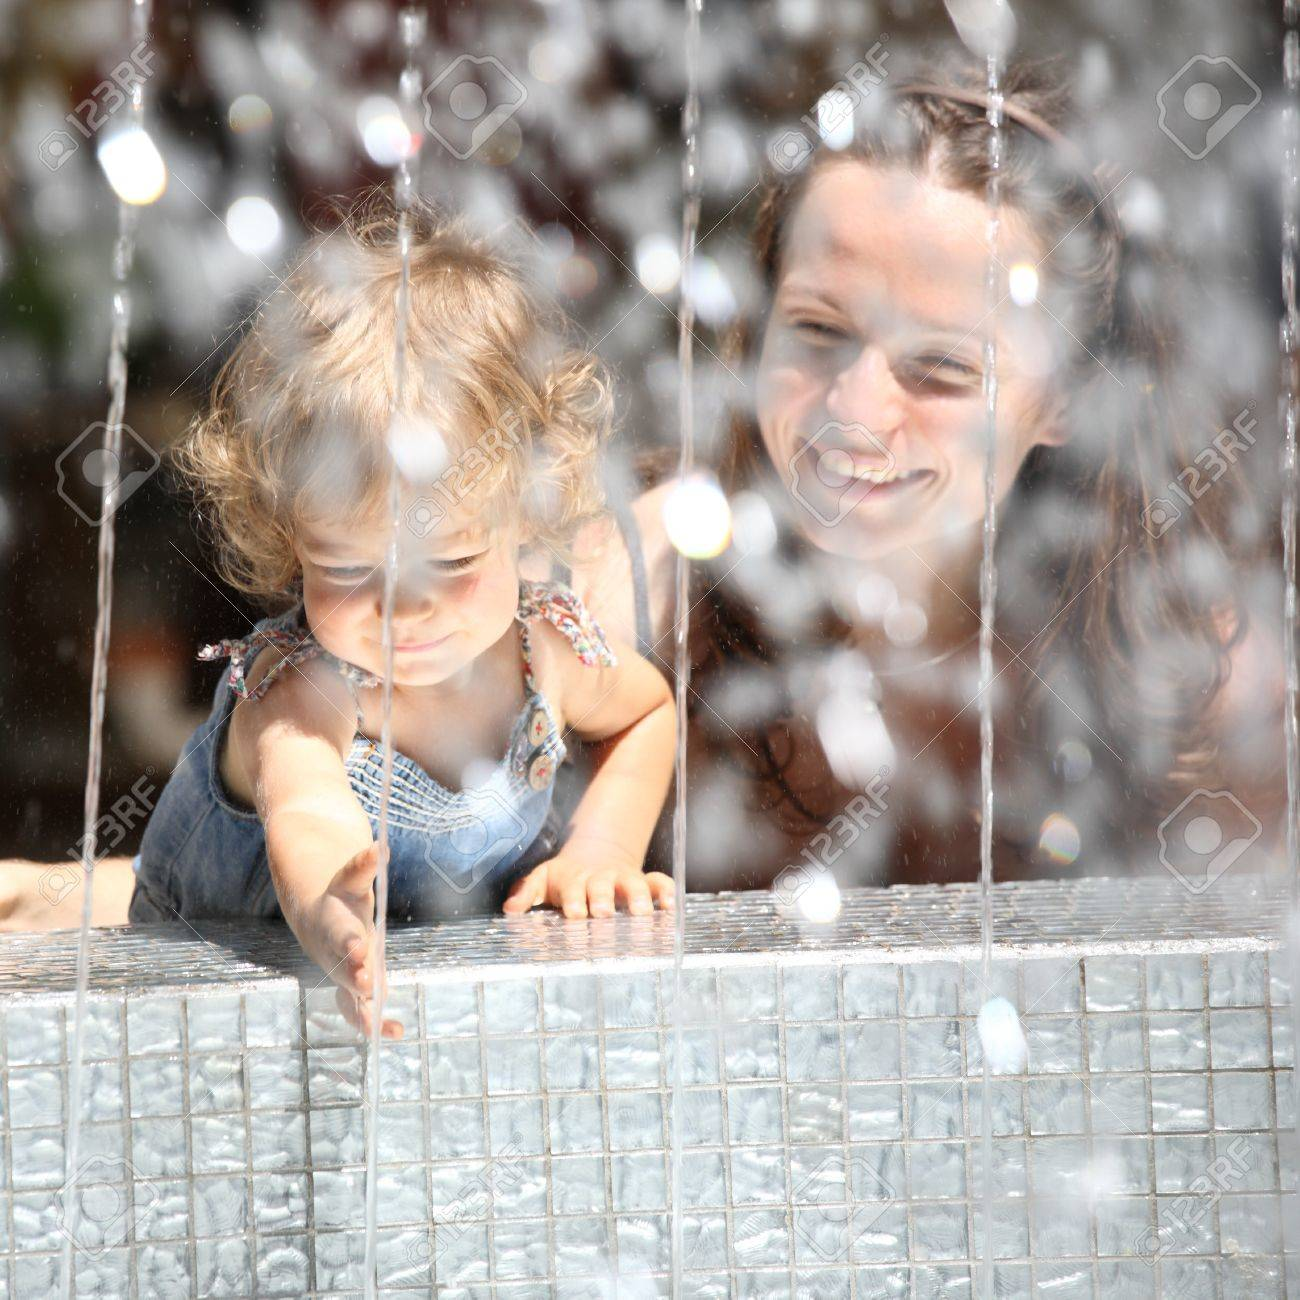 Smiling child and woman in fountain splashes Stock Photo - 8786135